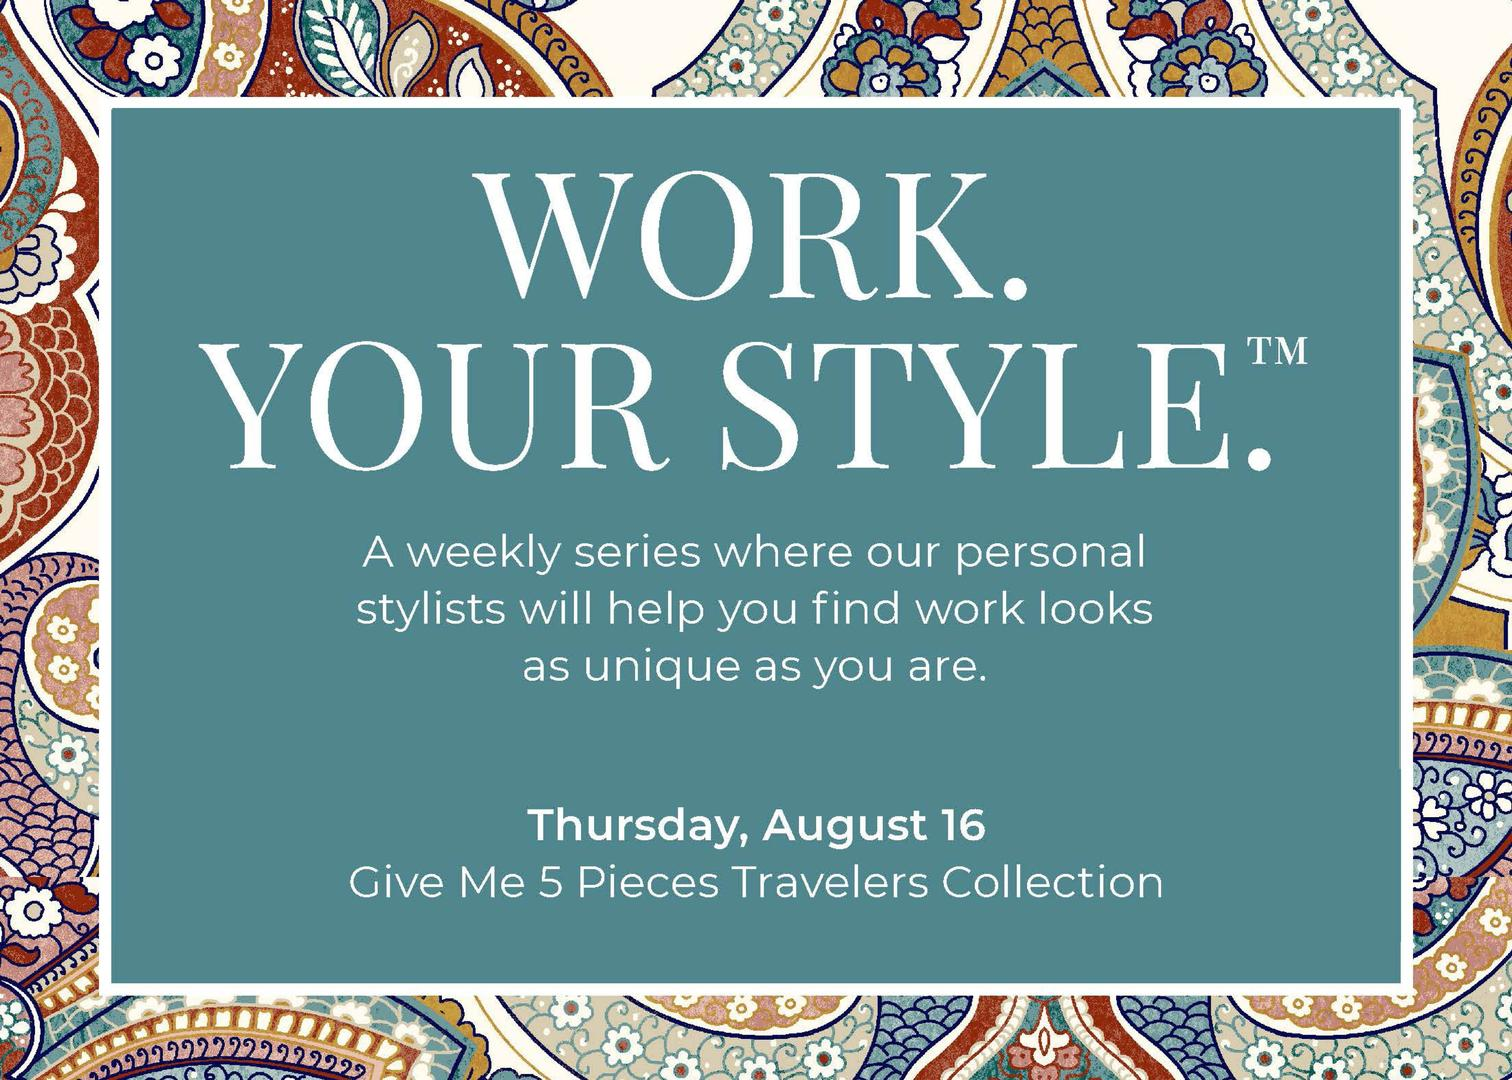 Central Texas Marketplace, Work You Style- Give Me 5 Pieces Travelers Collection  Event Image: 2444 West Loop 340, Ste 13, Waco, TX 76711, US